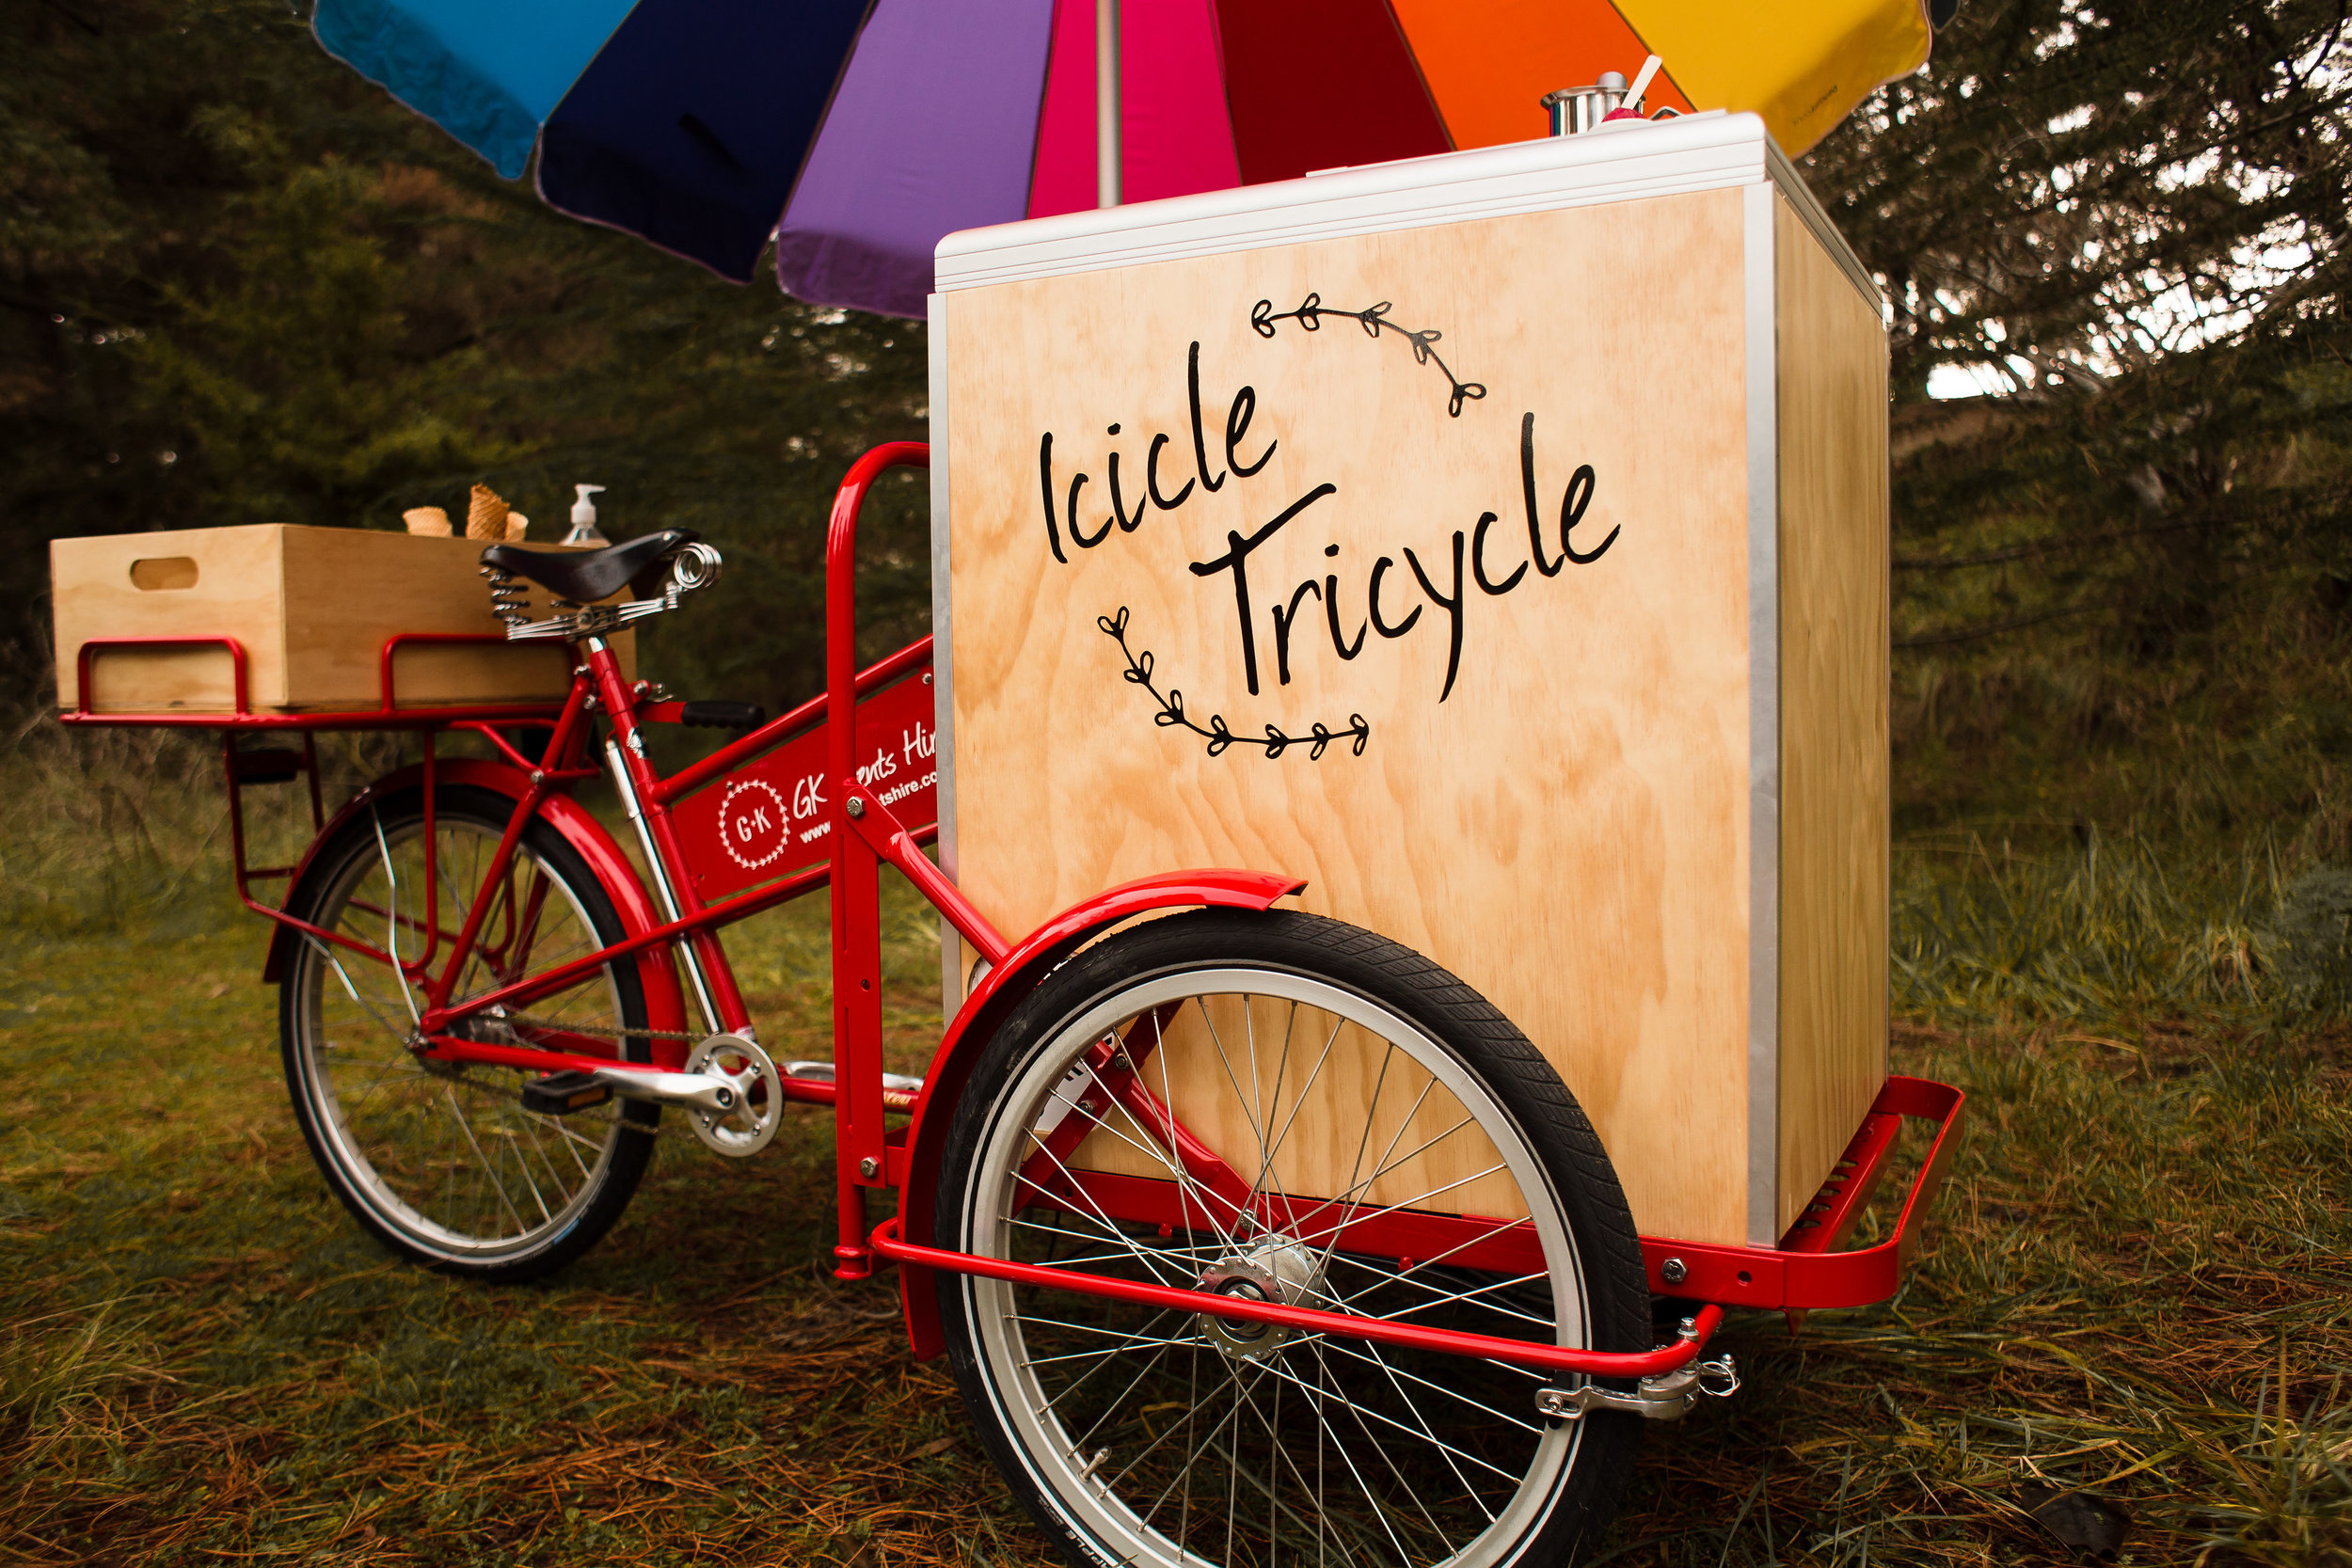 GK Events Hire Icicle Tricycle